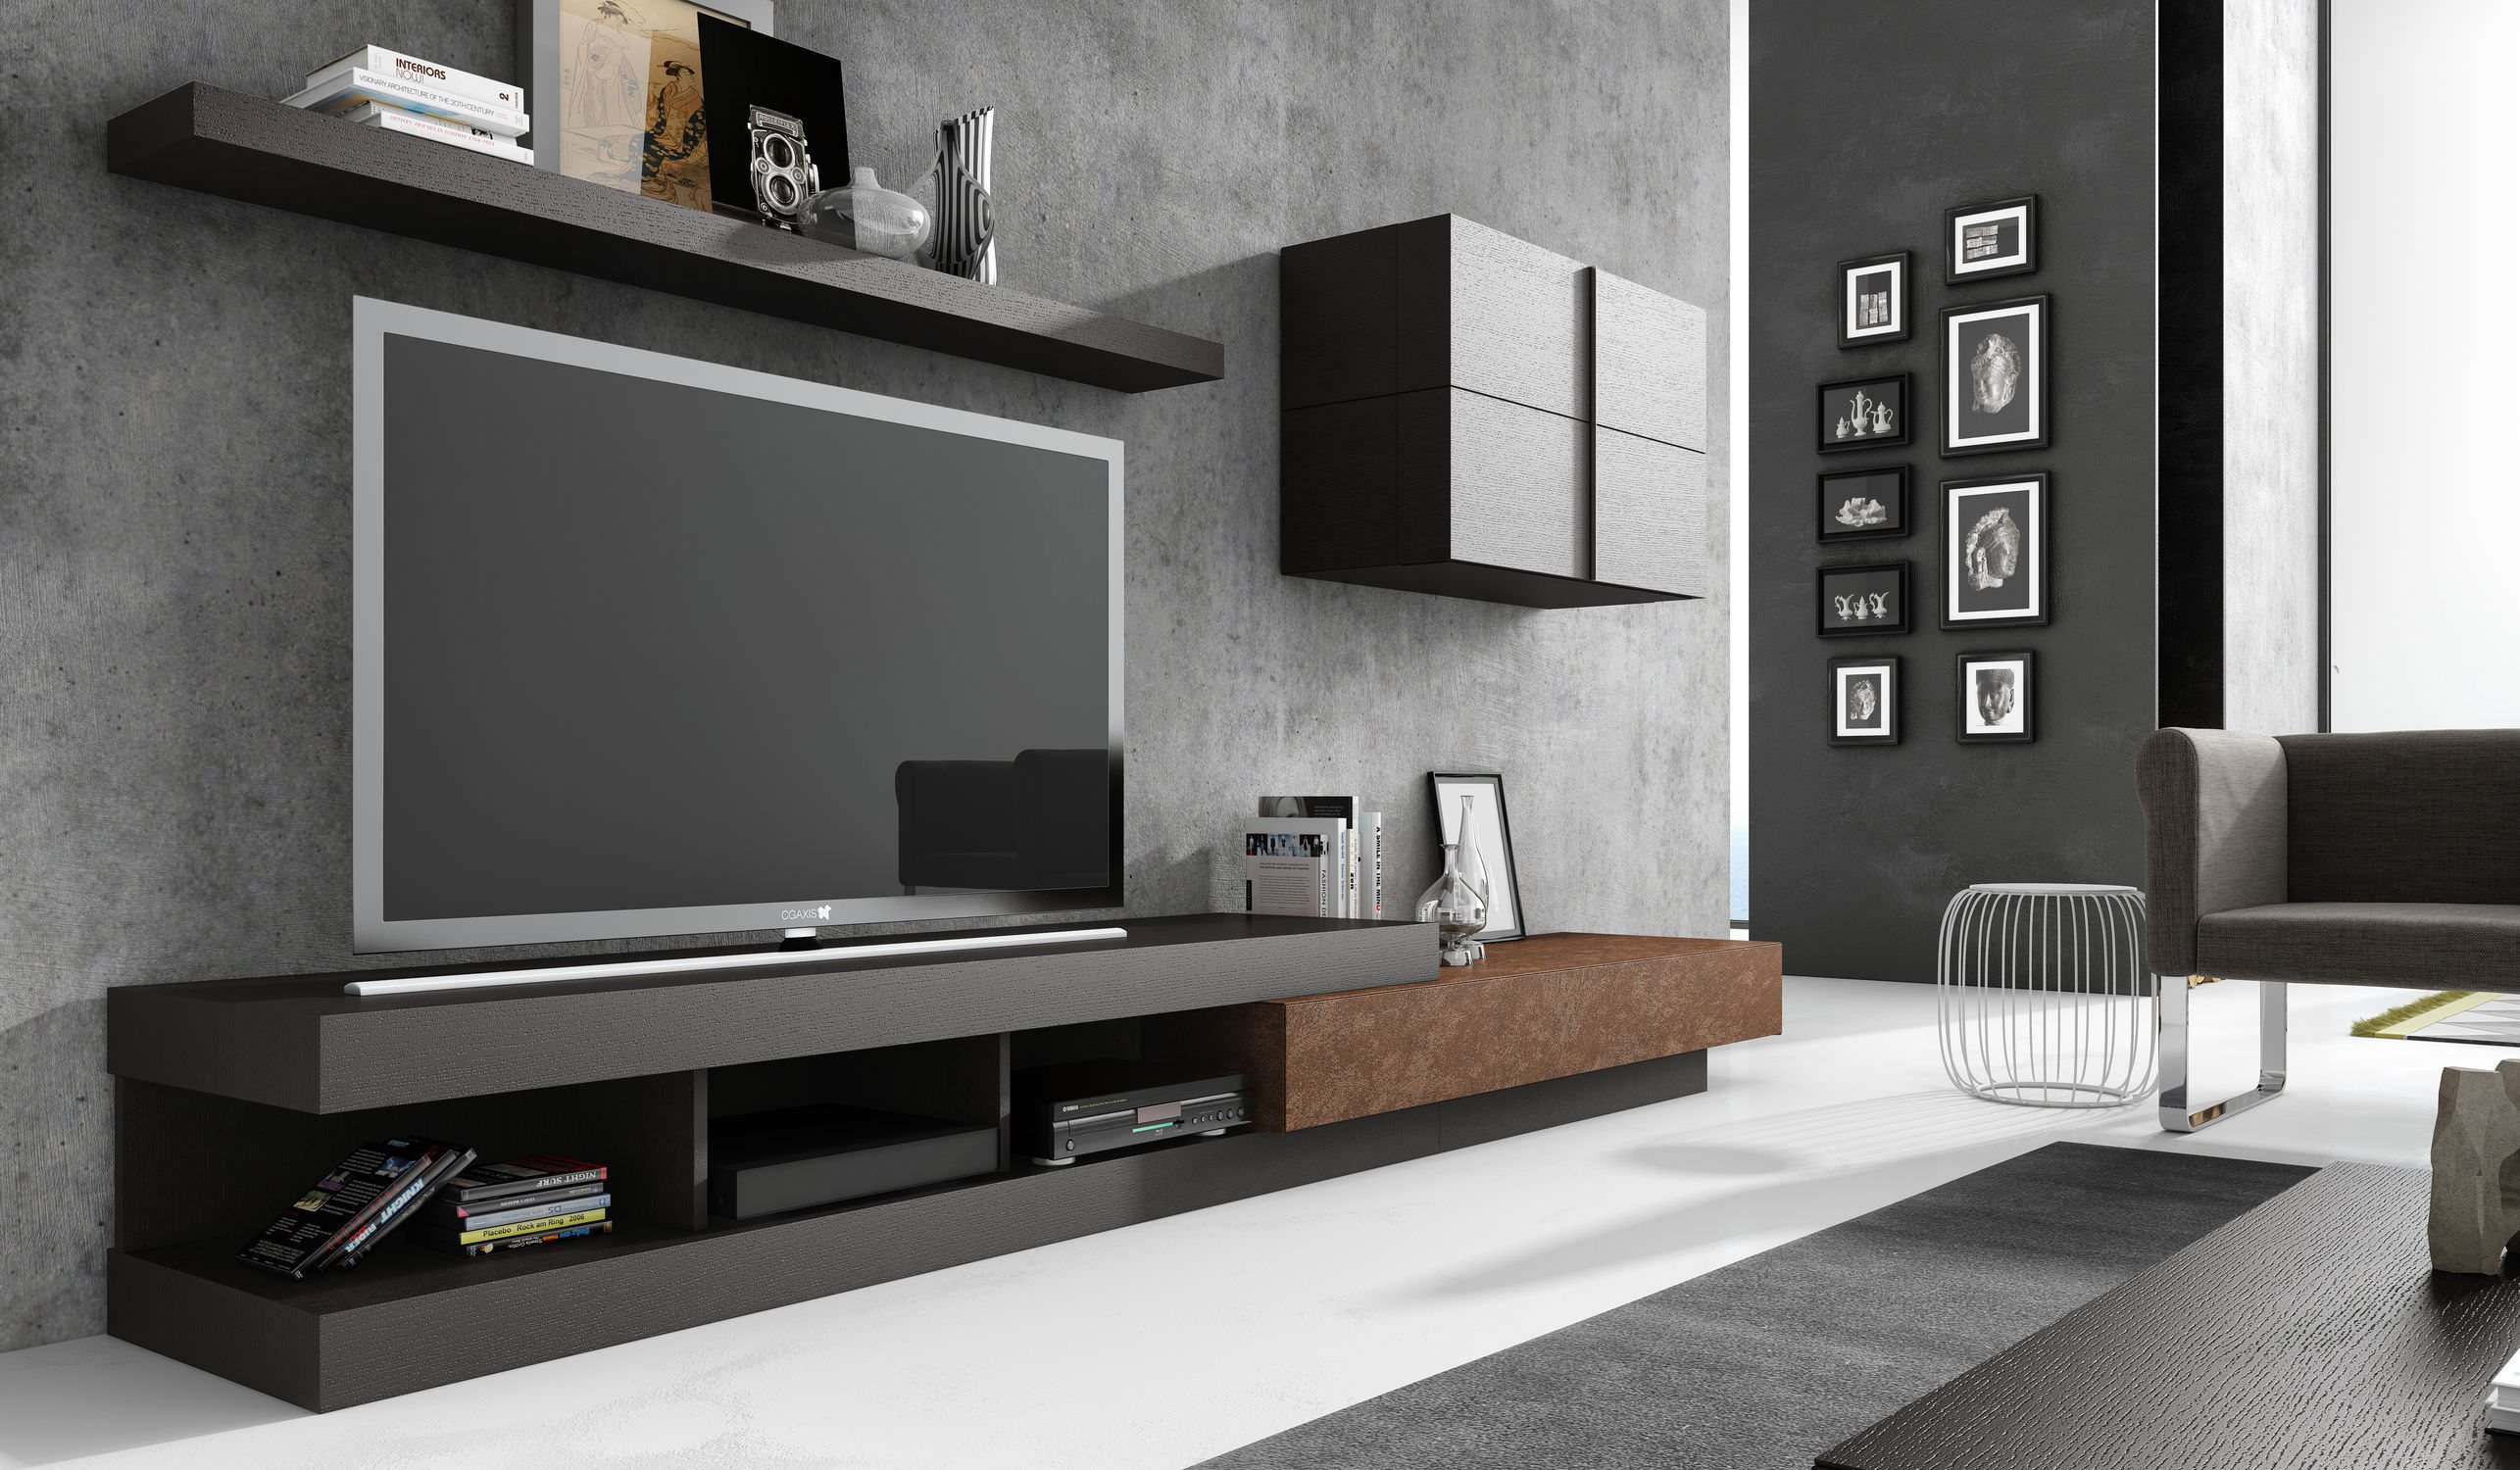 meuble de tv contemporain 1 id es de d coration int rieure french decor. Black Bedroom Furniture Sets. Home Design Ideas